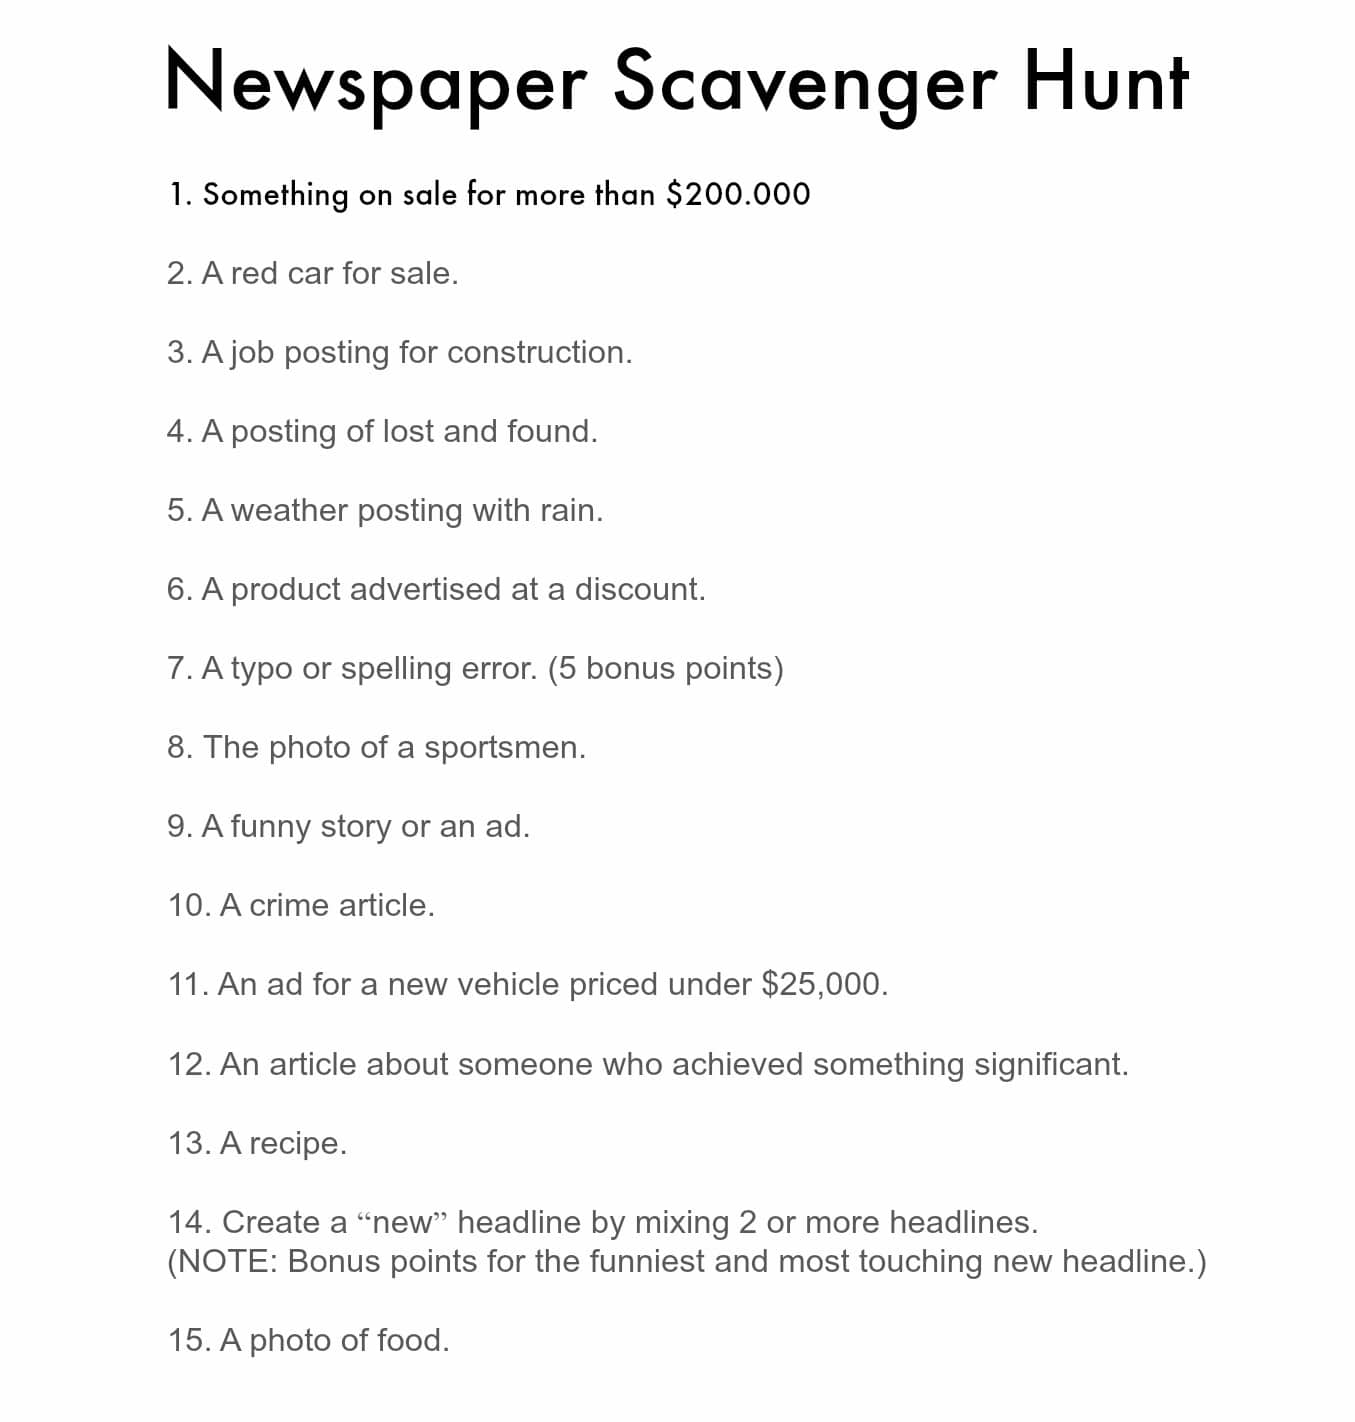 Scavenger Hunt List >> Newspaper Scavenger Hunt Game Perfect For Lazy Family